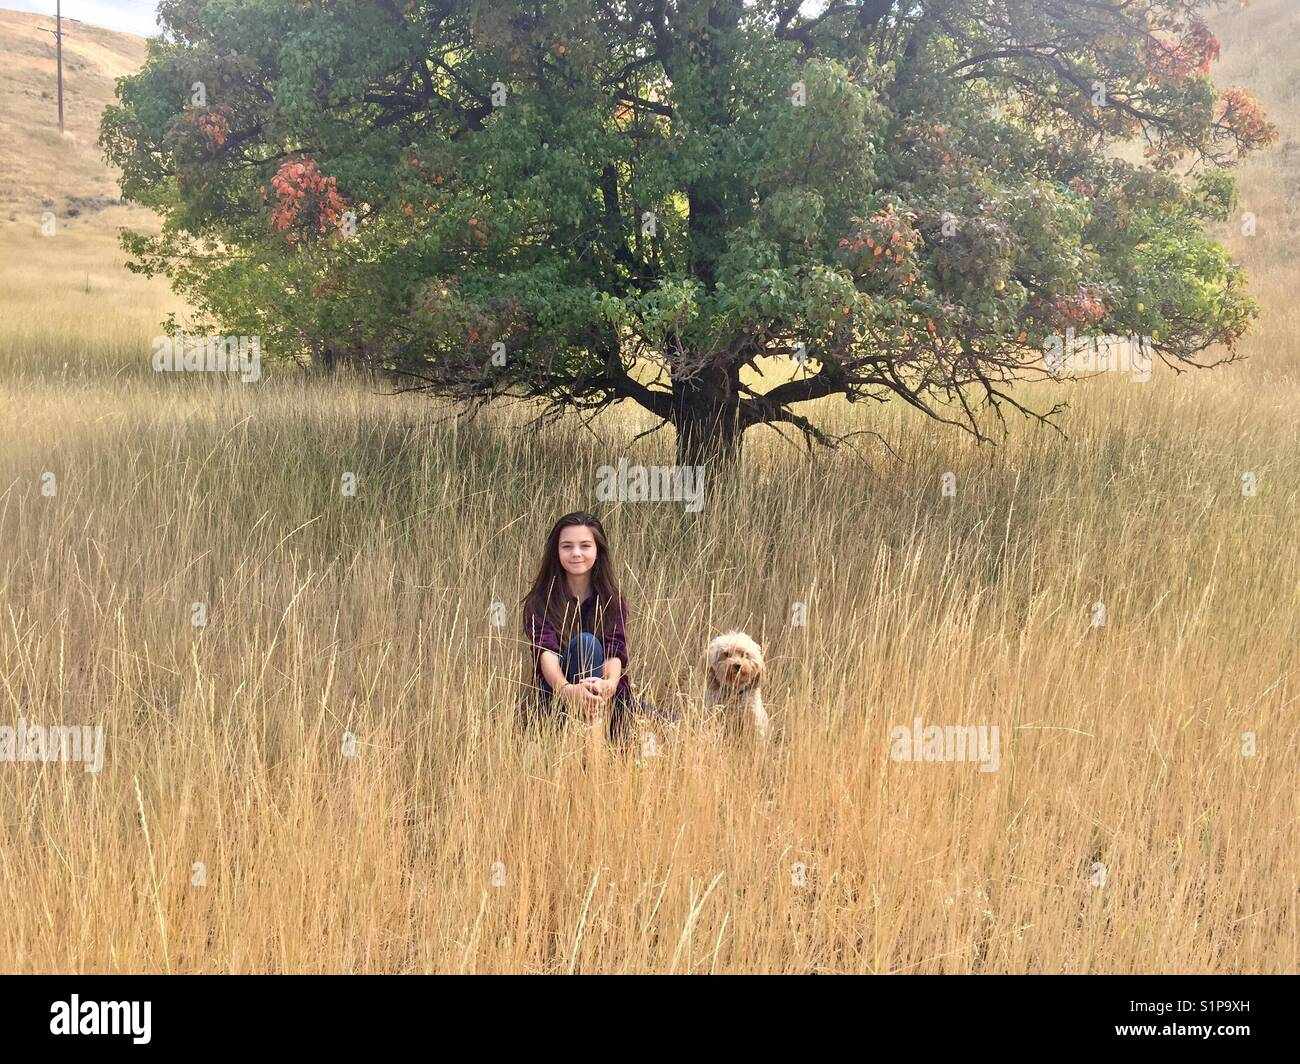 A girl and her goldendoodle puppy sit in a field by a tree with colorful leaves in Salt Lake City, Utah. - Stock Image